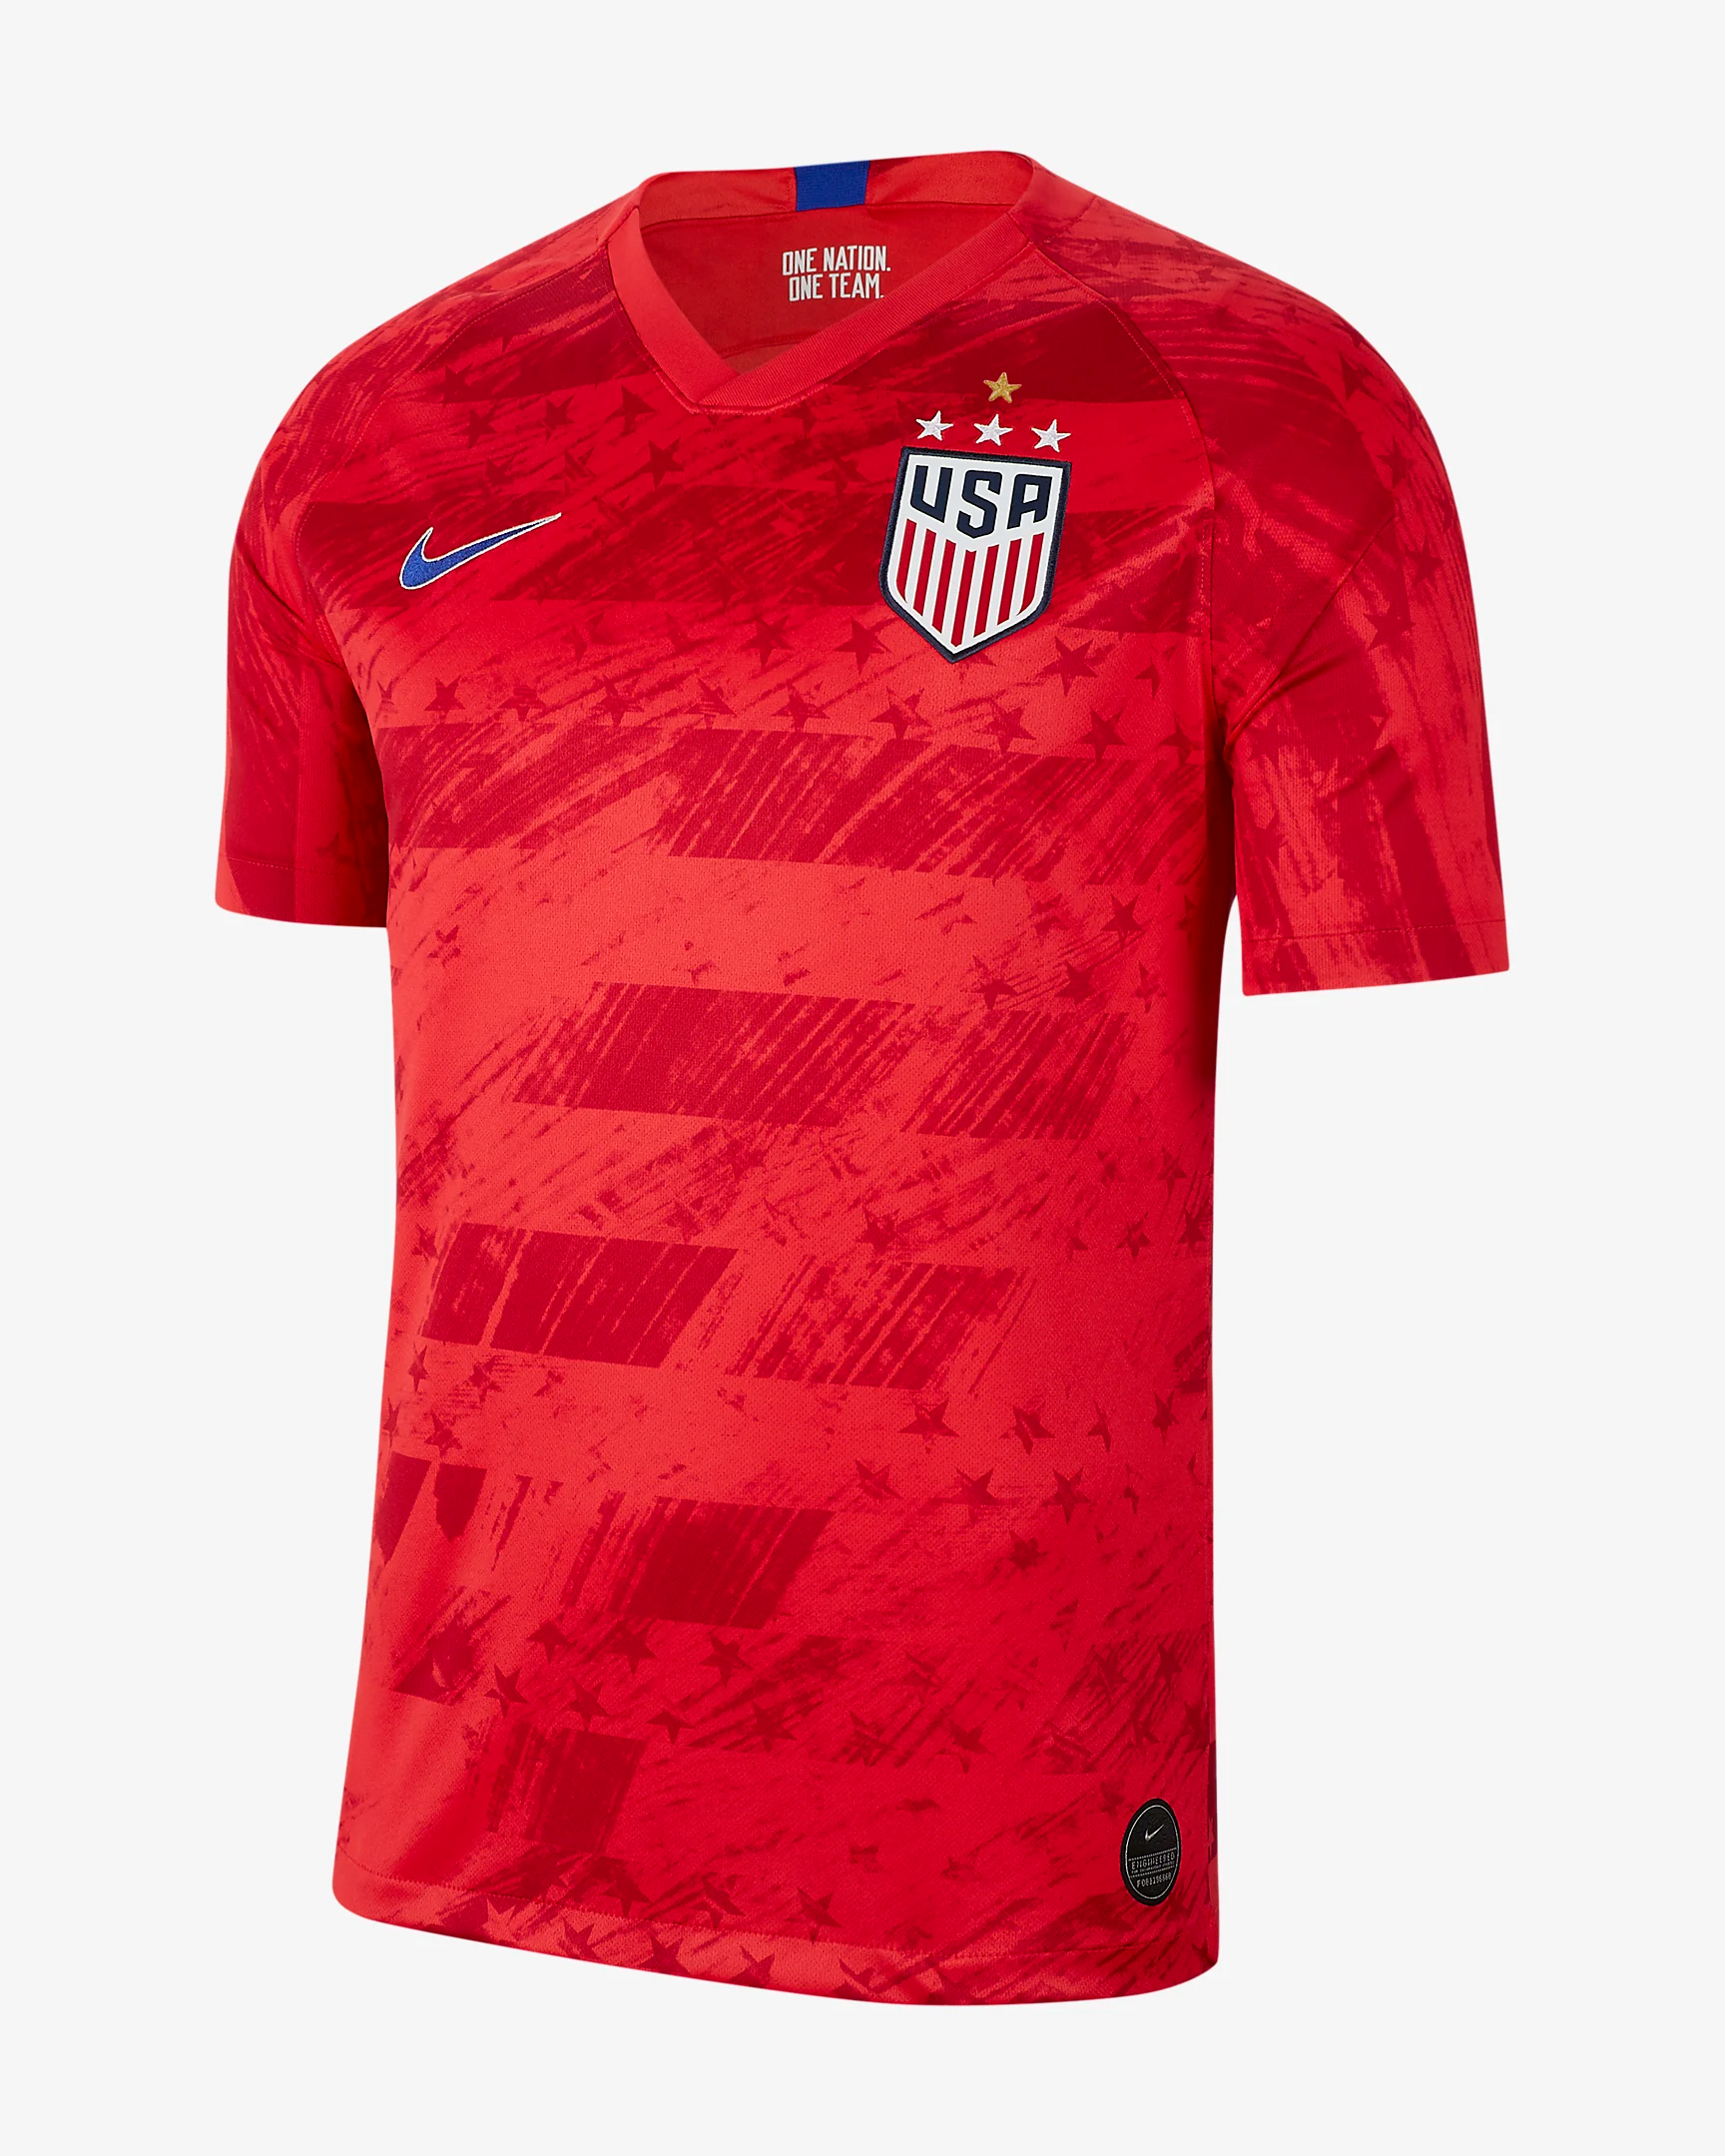 us-2019-stadium-away-mens-soccer-jersey-qsWTmf.png